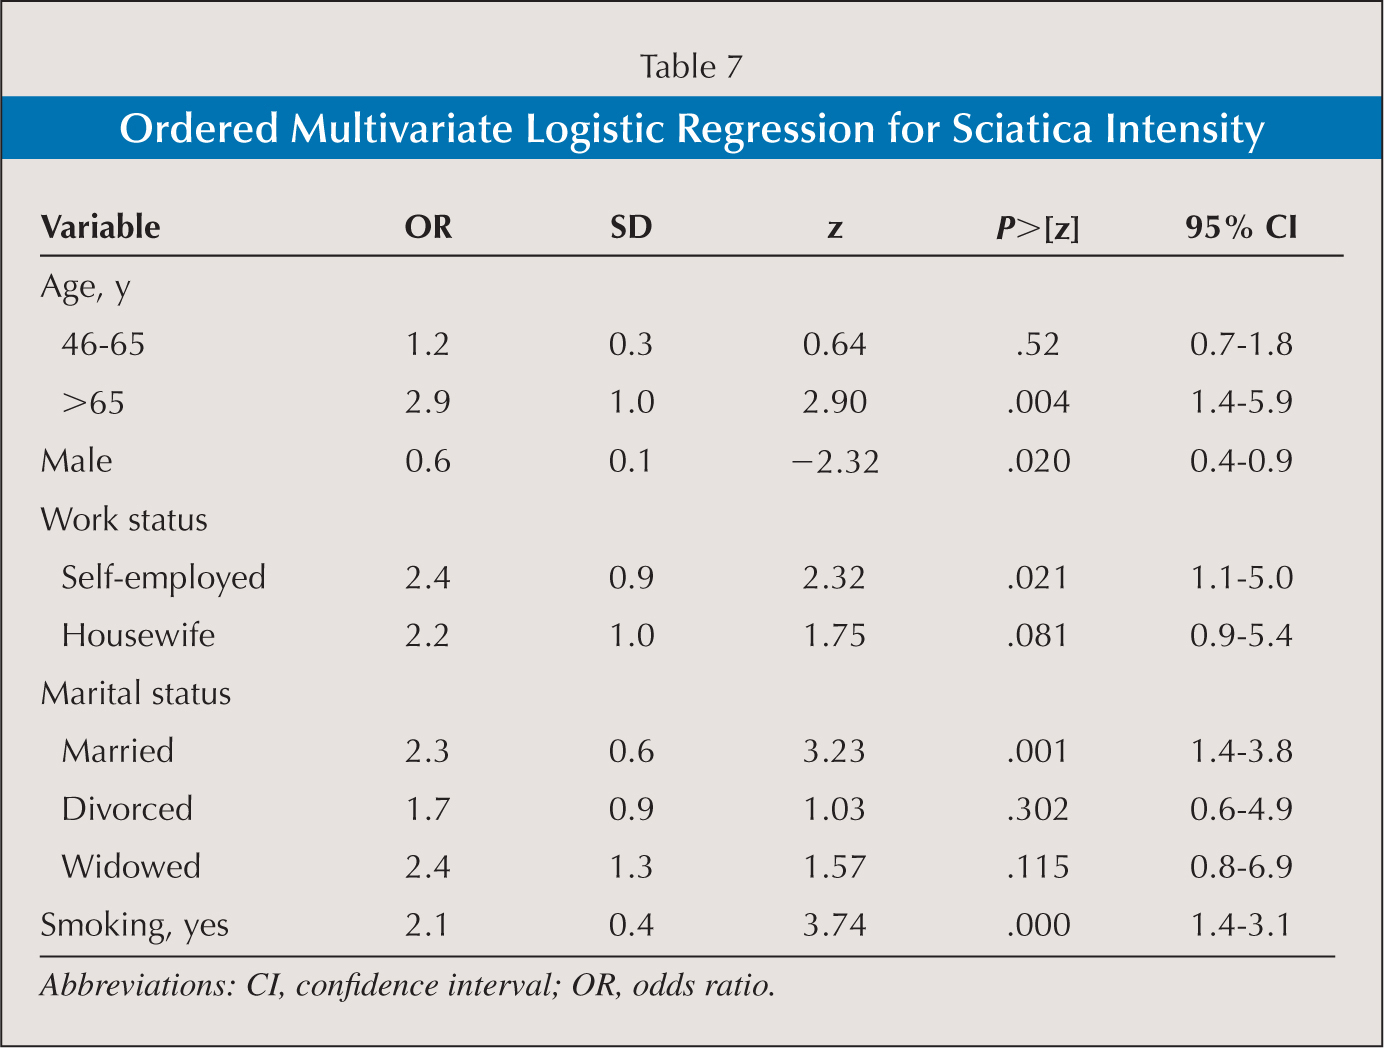 Ordered Multivariate Logistic Regression for Sciatica Intensity